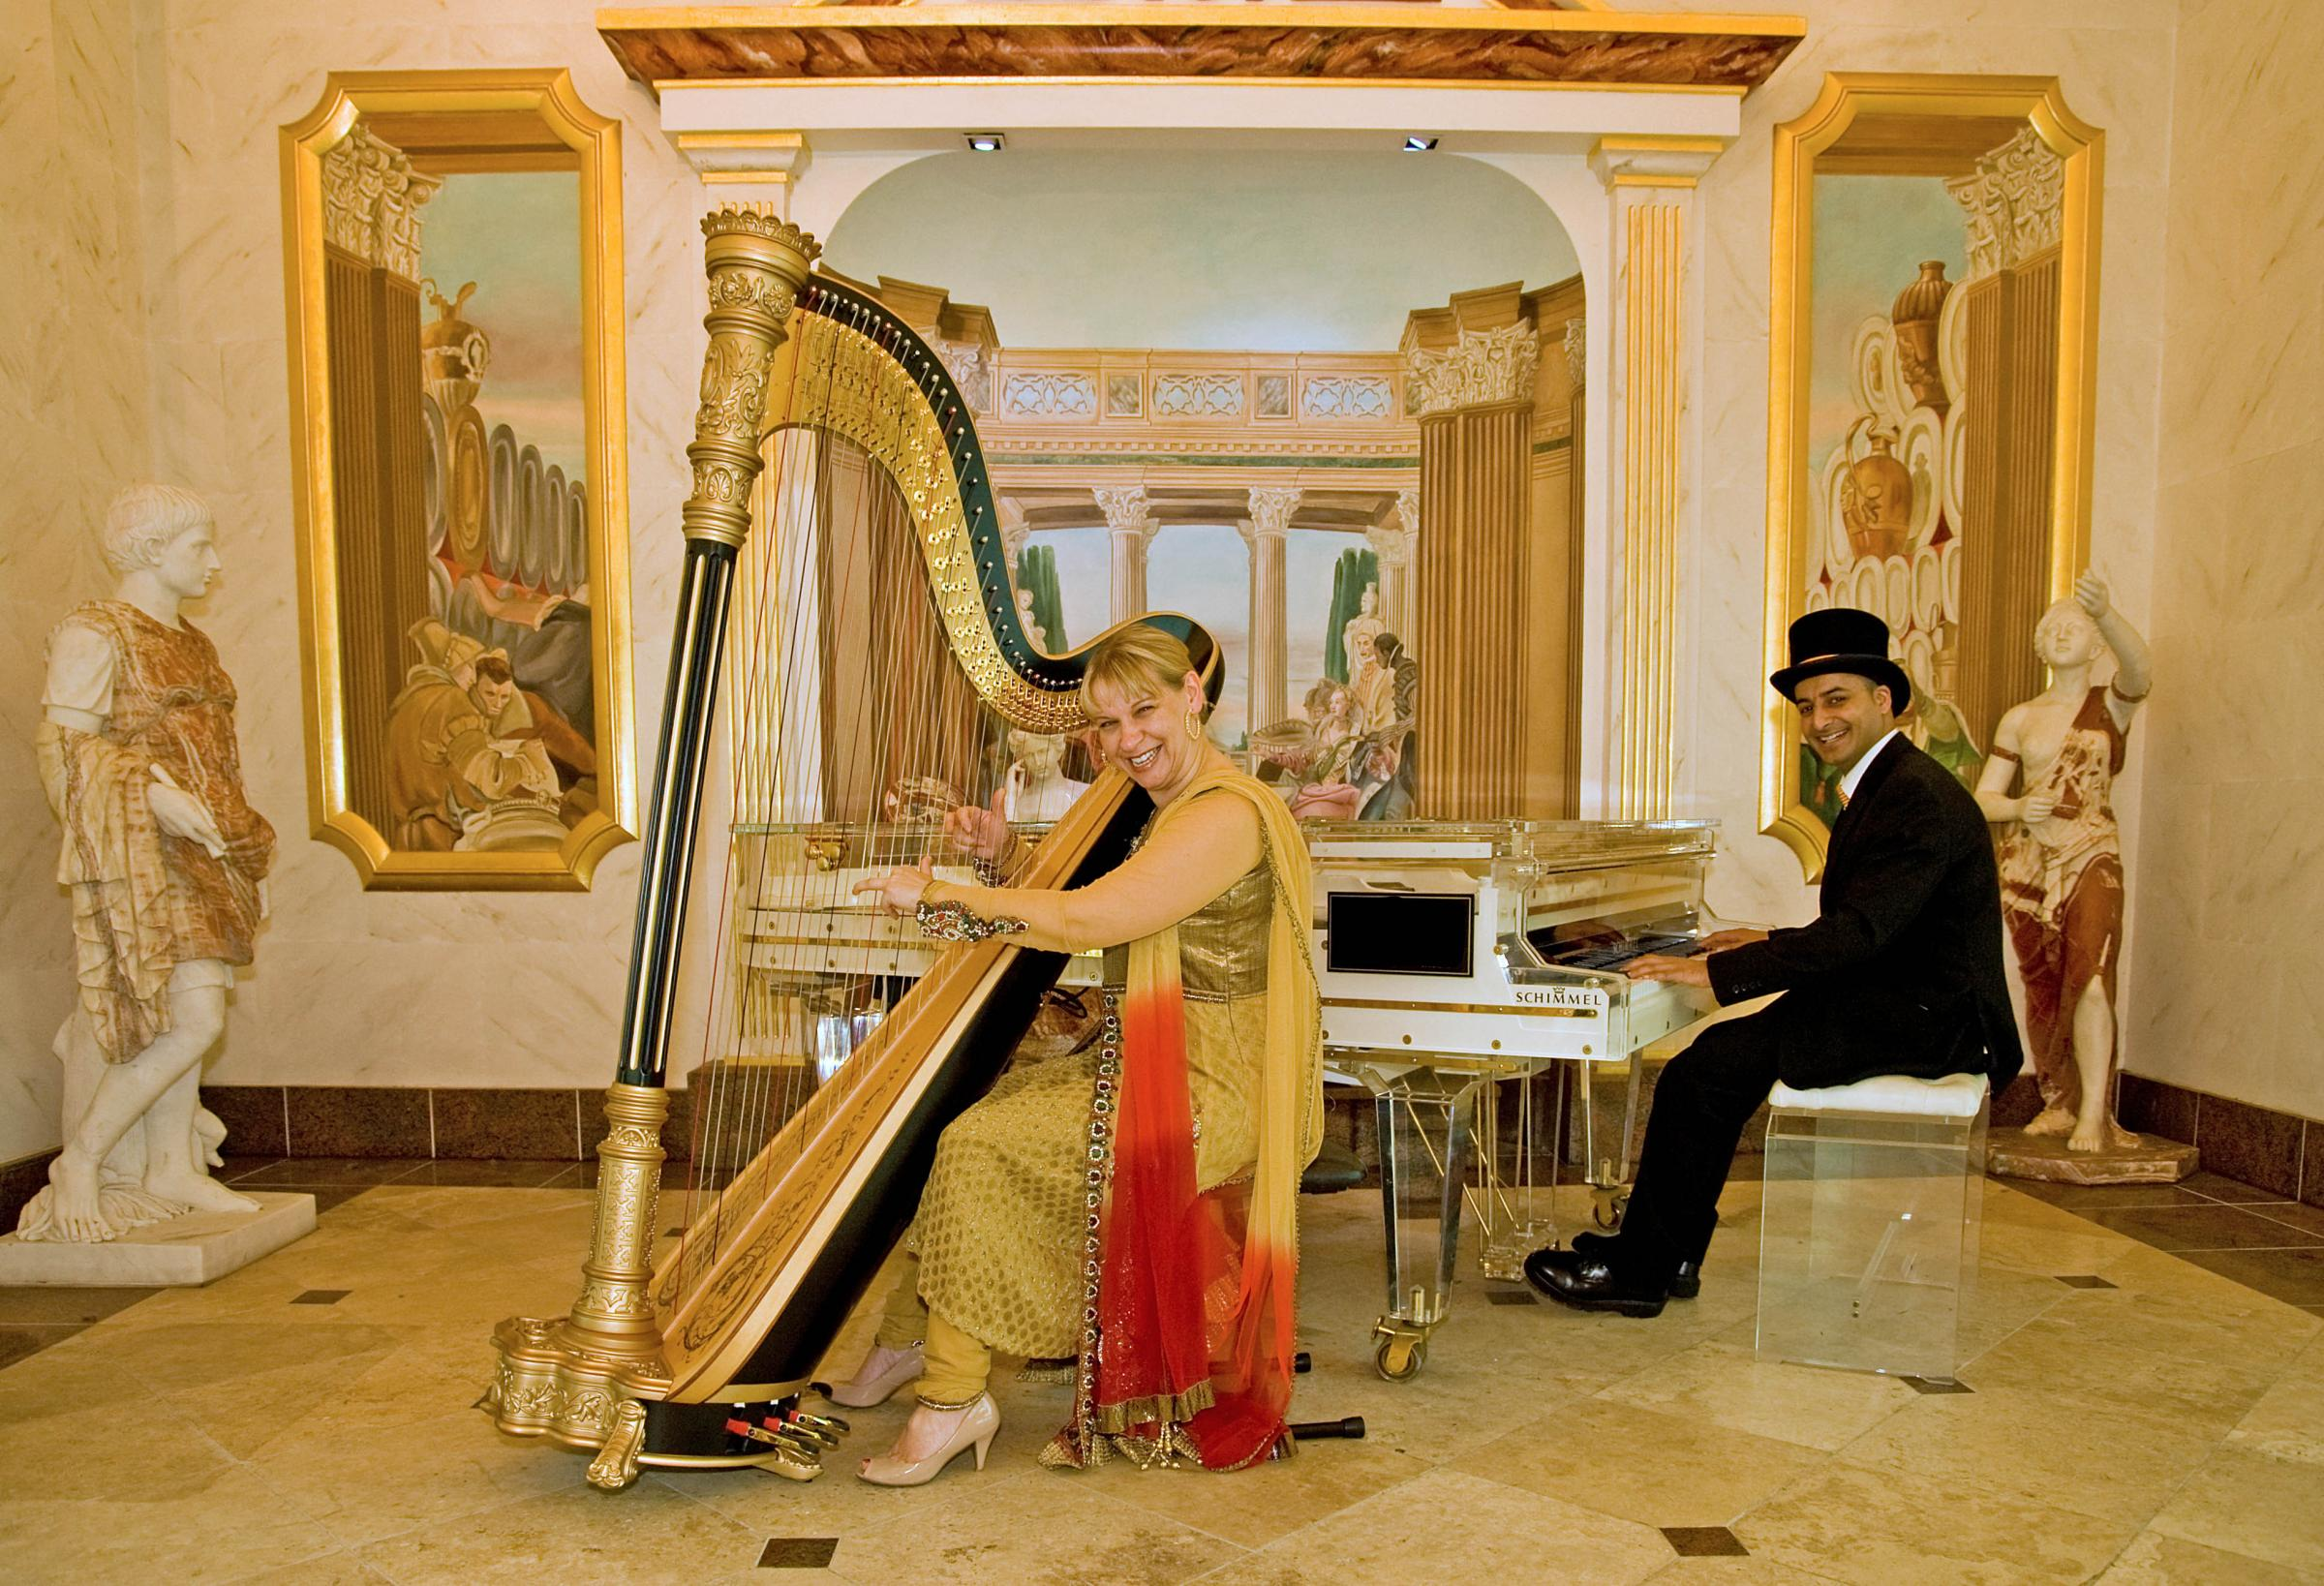 Wasim Awan, customer services, strikes up a welcome tune at the glass piano with Bollywood harpist Maxine Molin-Rose, who will be one